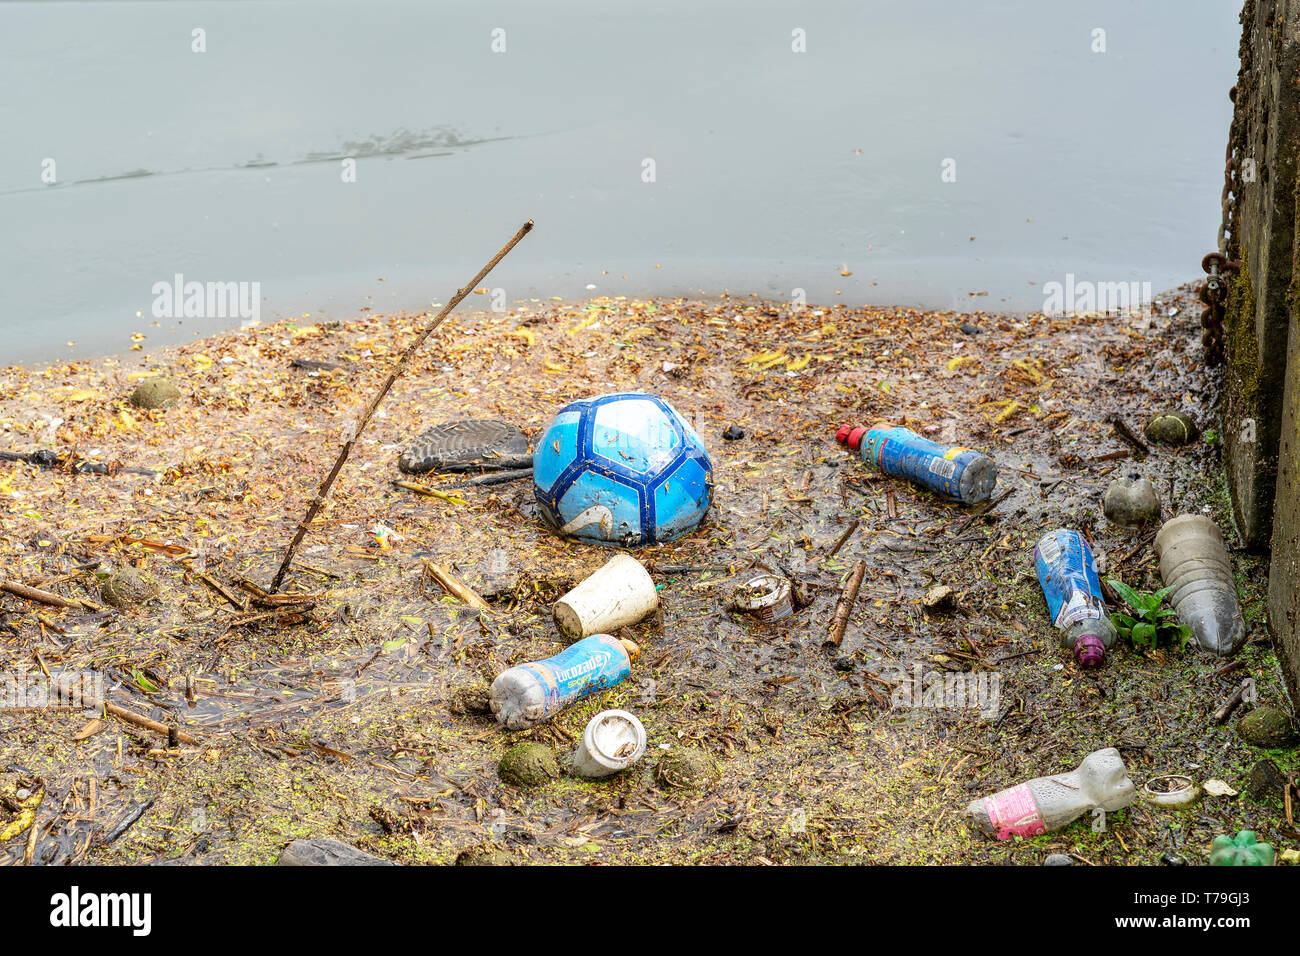 Plastic bottles and football in river - Stock Image